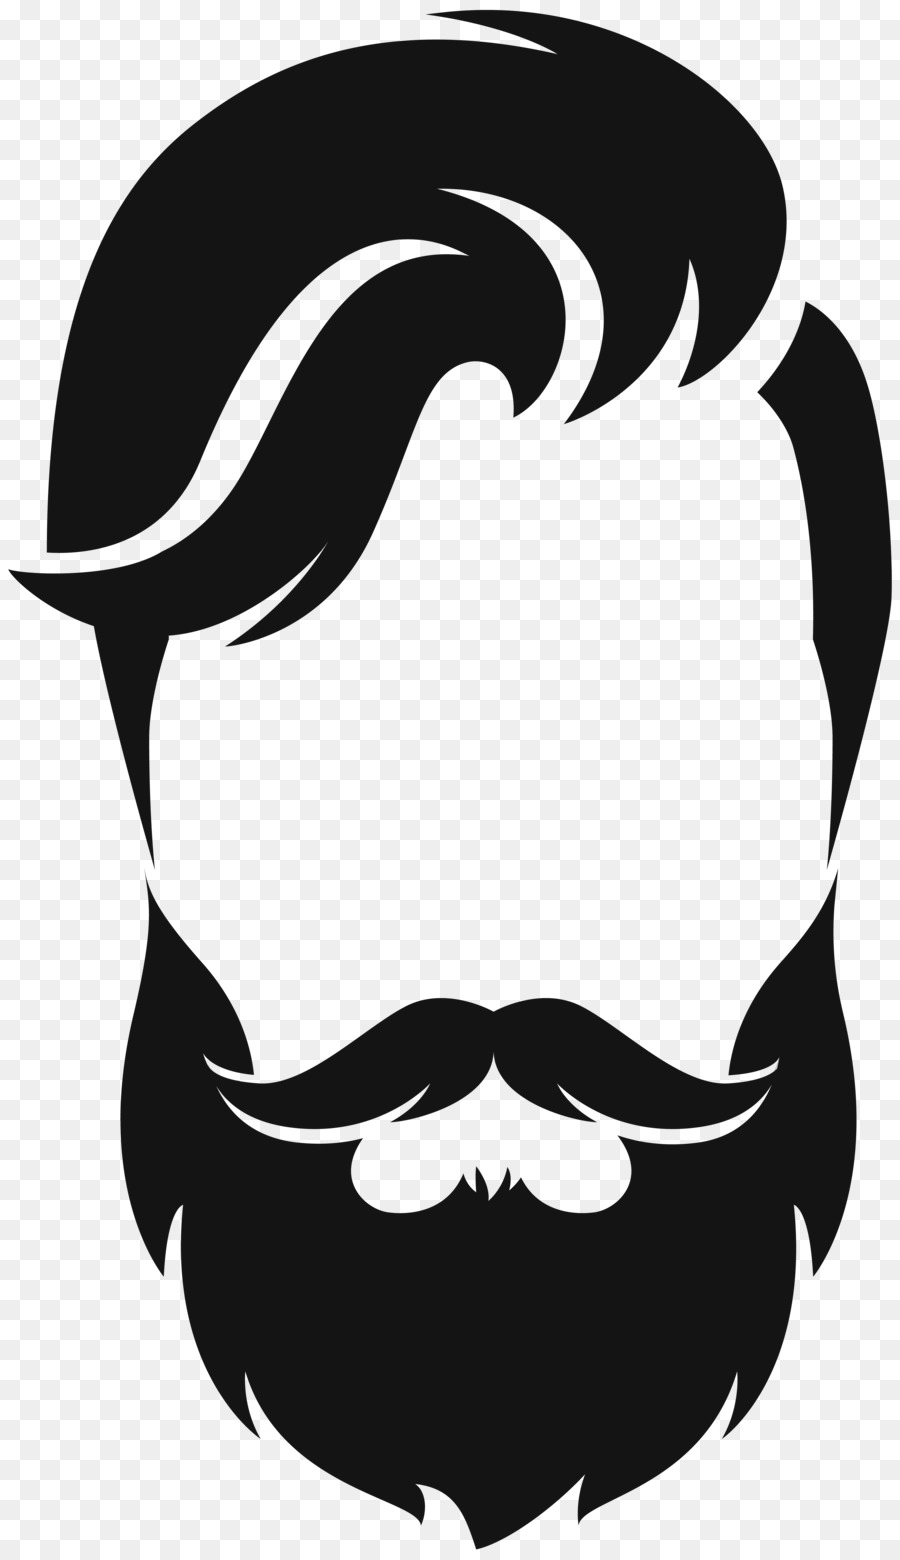 Beard clipart real, Beard real Transparent FREE for download.